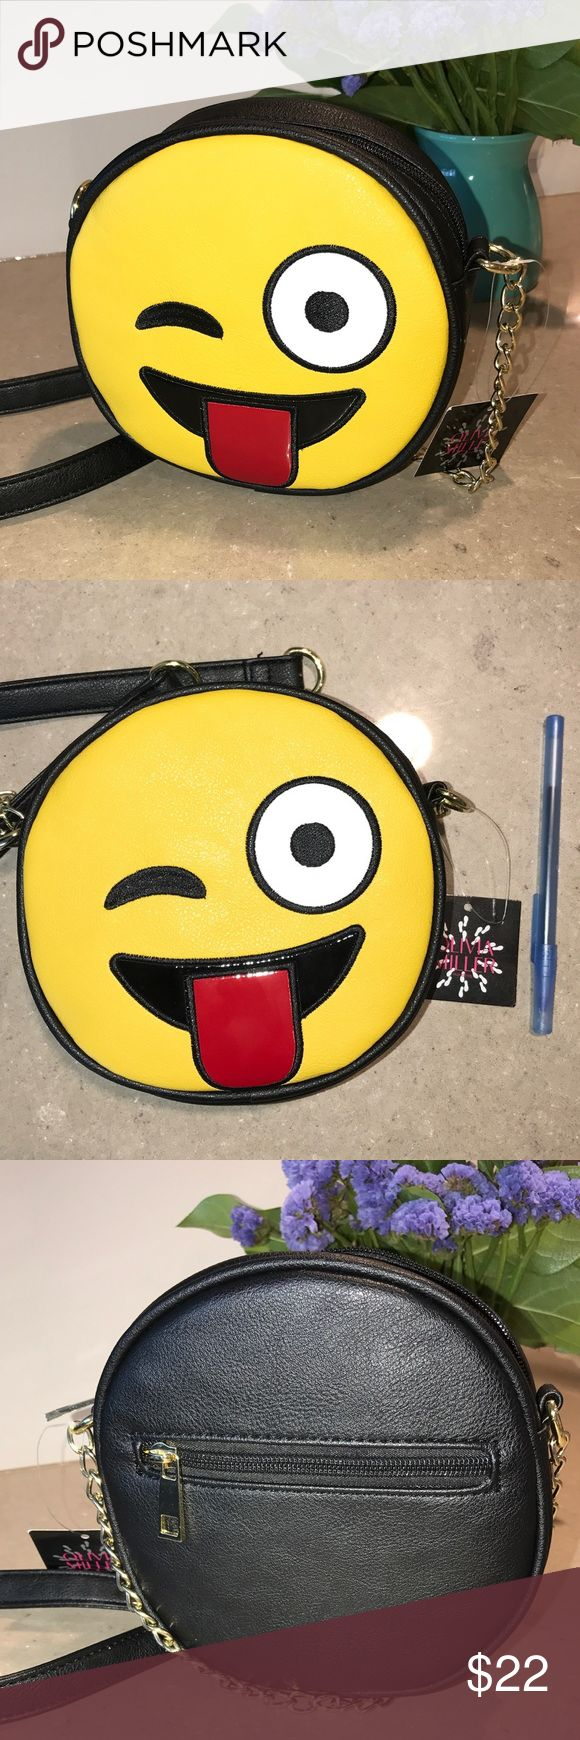 NWT Olivia Miller Emoji Bag Fun and adorable, this bag can be worn cross-body or on one shoulder. One roomy main compartment and one compartment in the back. Pen for scale. Olivia Miller Bags